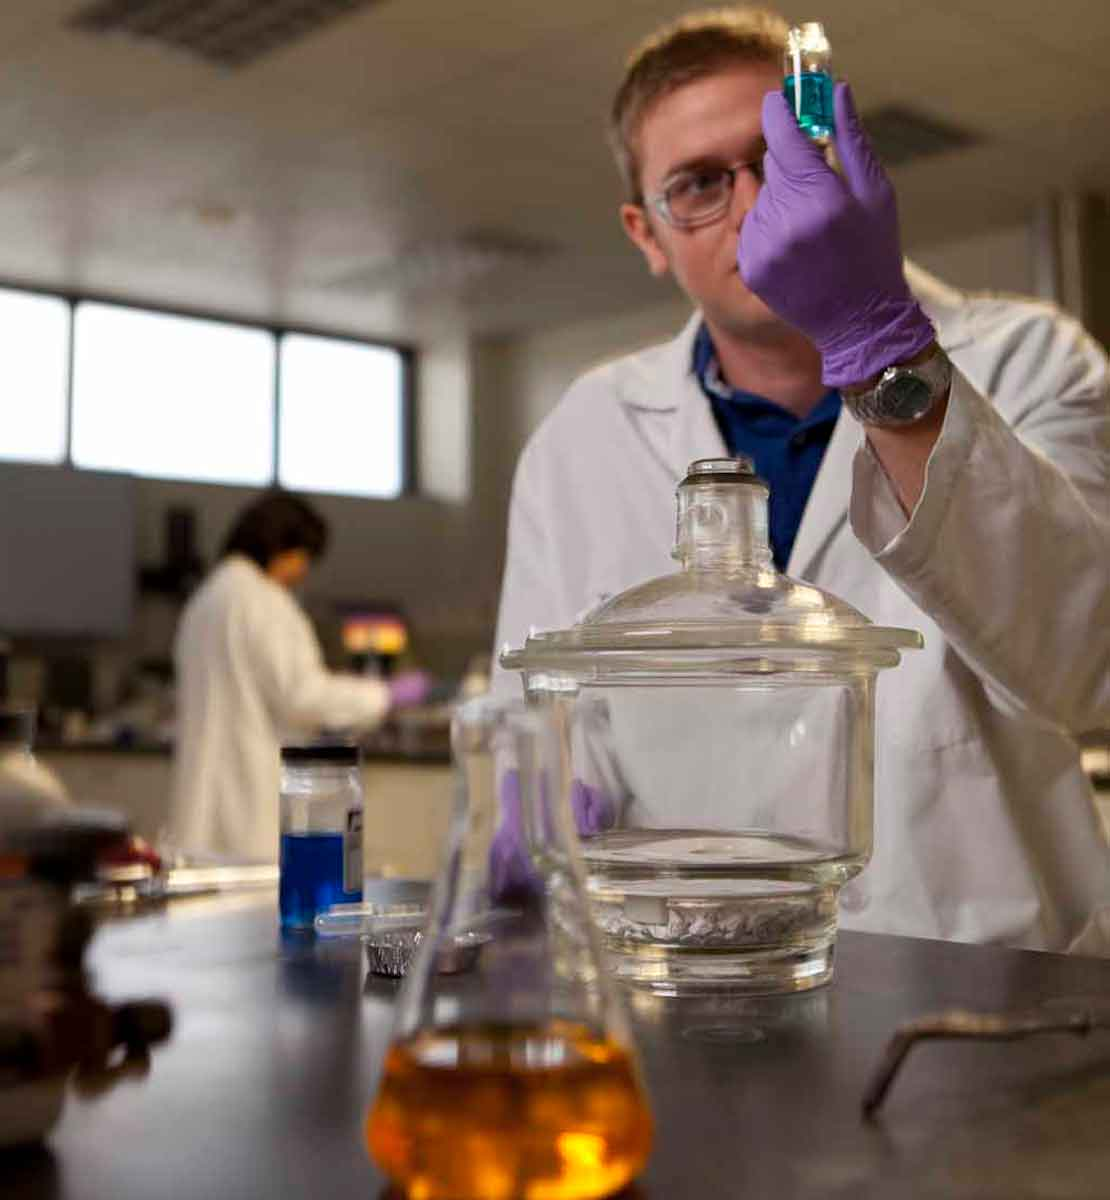 Worker looking at halide brines in laboratory